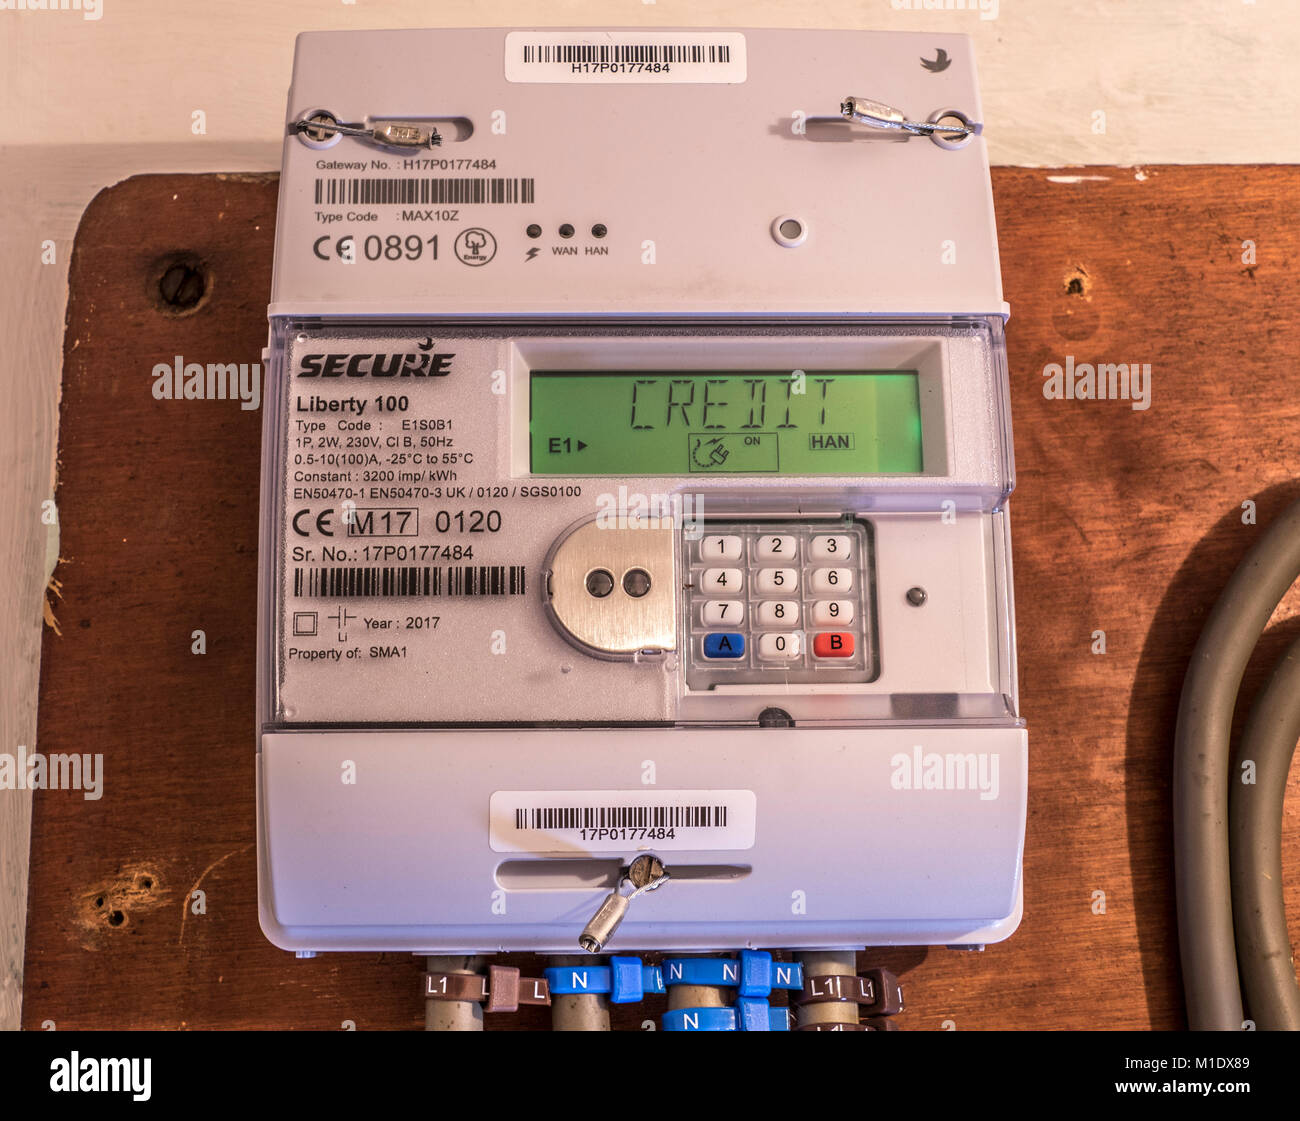 Secure Liberty 100 smart electricity meter, measuring consumption and relaying 'Credit' information via - Stock Image